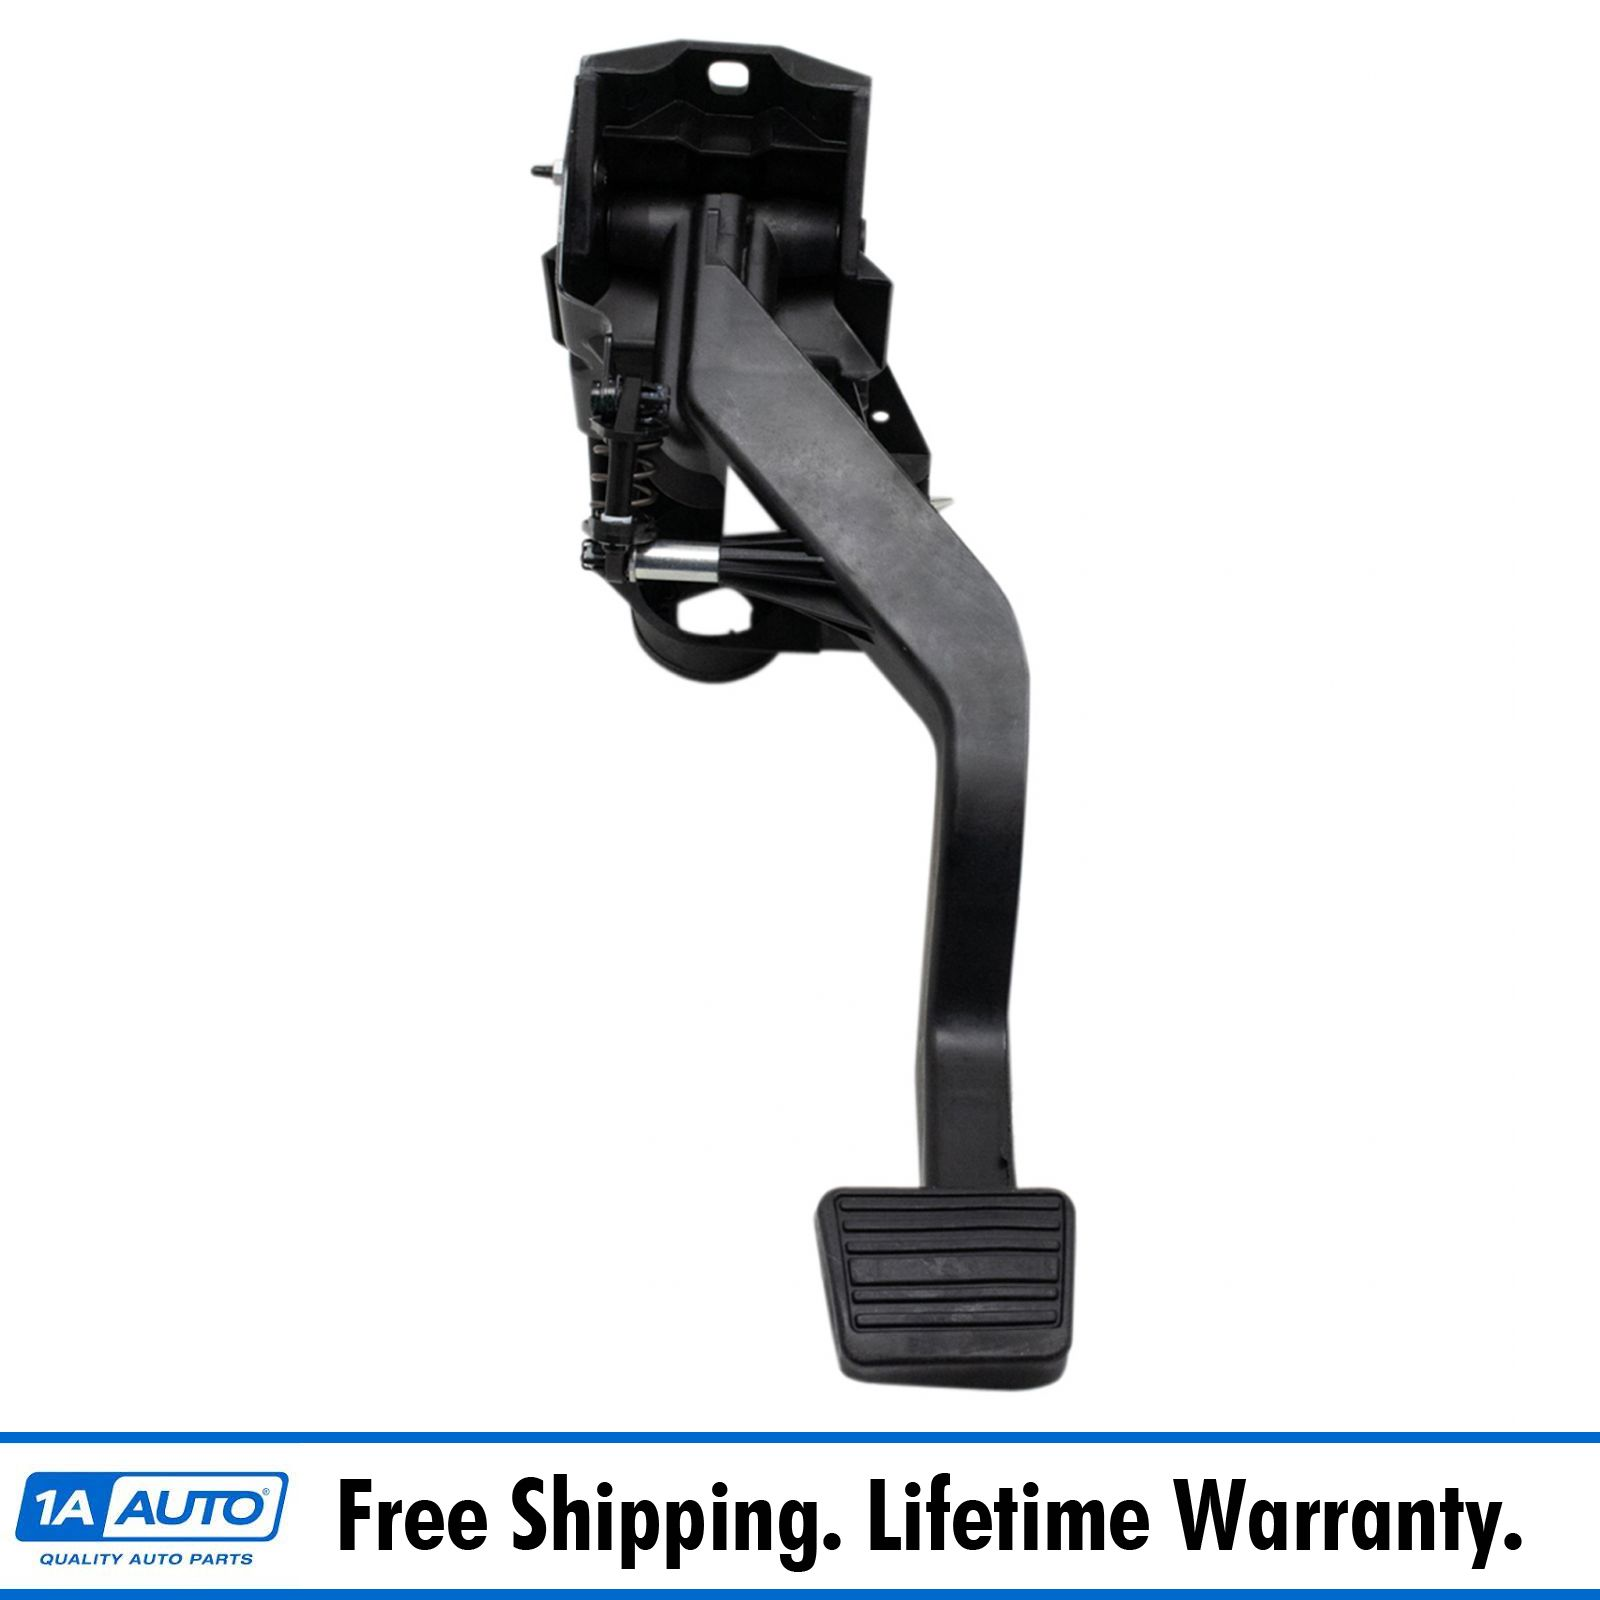 Details about OEM Clutch Pedal & Bracket Assembly for Chevy Silverado  Pickup Truck SUV 6 Speed